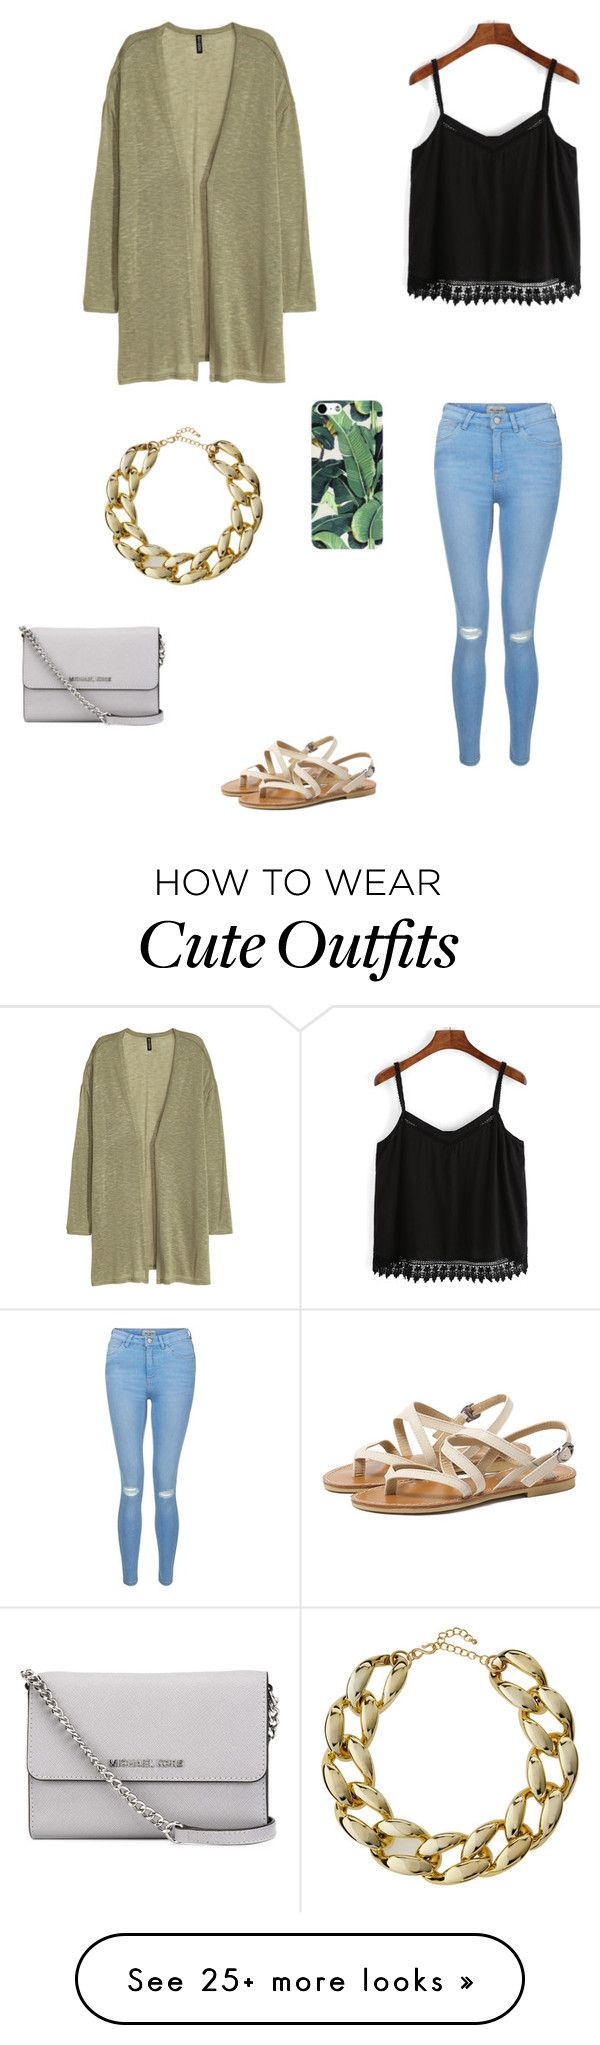 """""""Cute summer outfit"""" by princessrena on Polyvore featuring H&M, New Look, Kenneth Jay Lane and MICHAEL Michael Kors"""